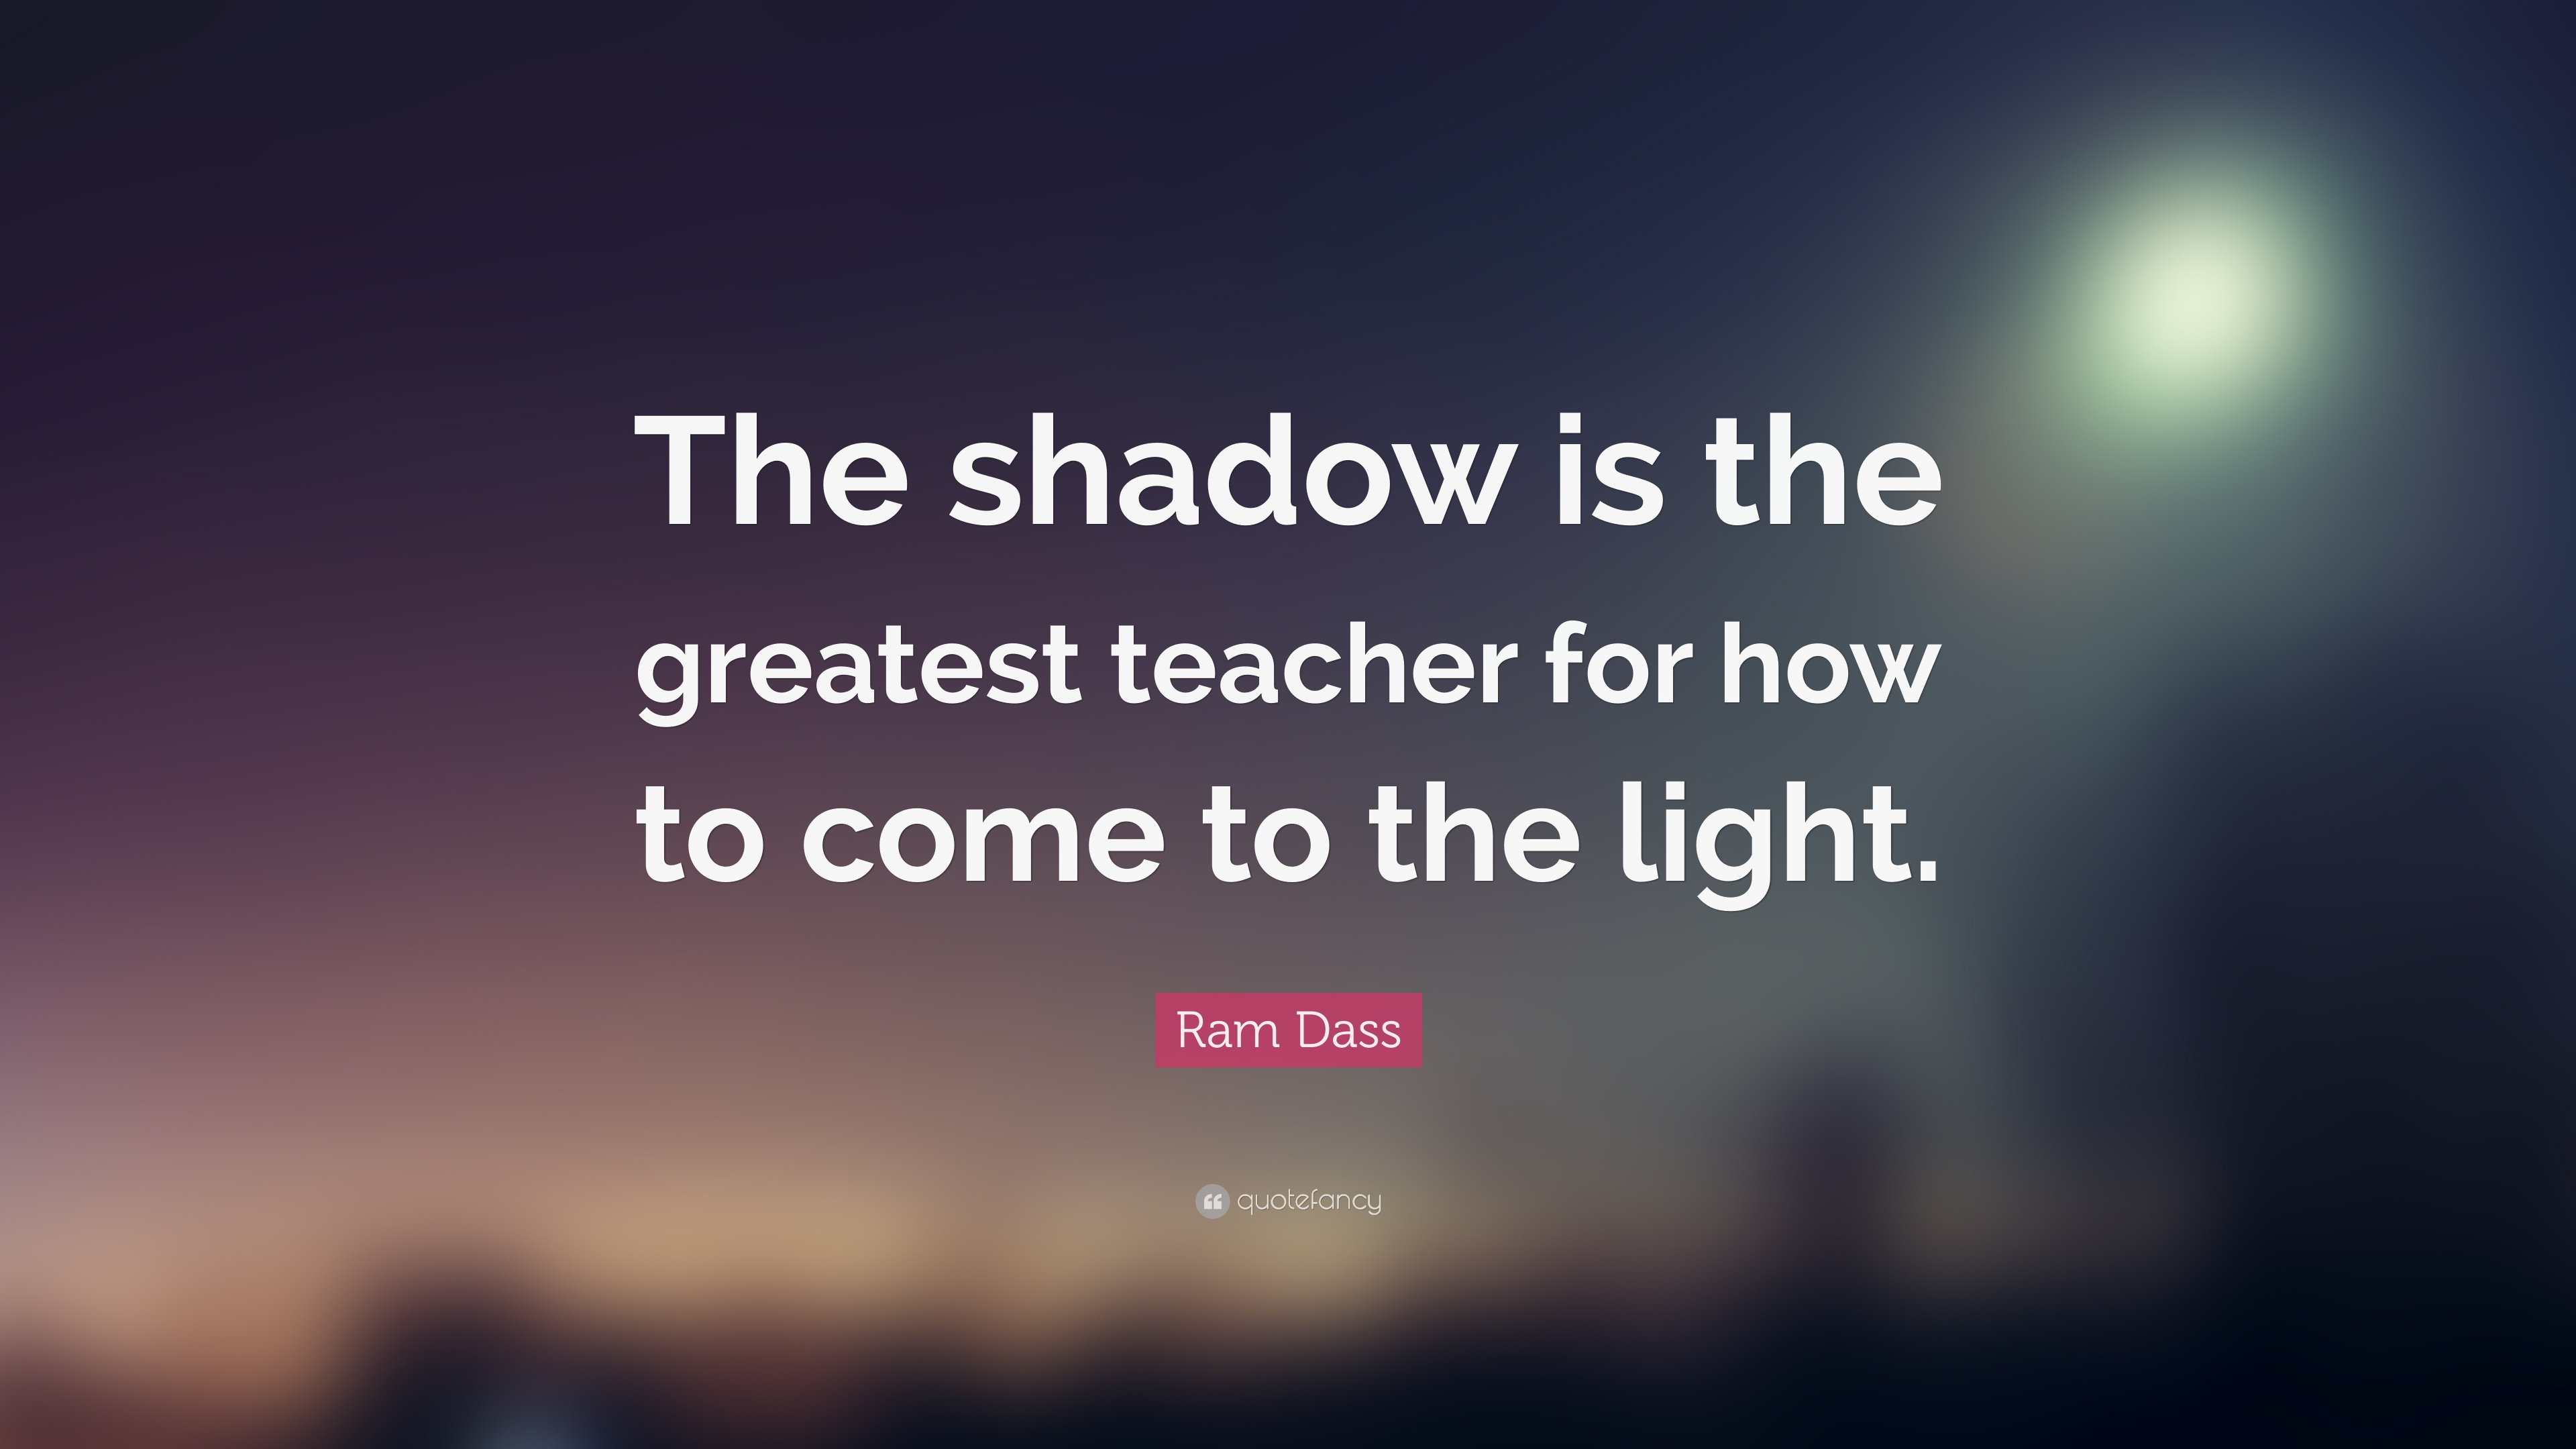 Yoga Quotes Wallpaper Ram Dass Quote The Shadow Is The Greatest Teacher For